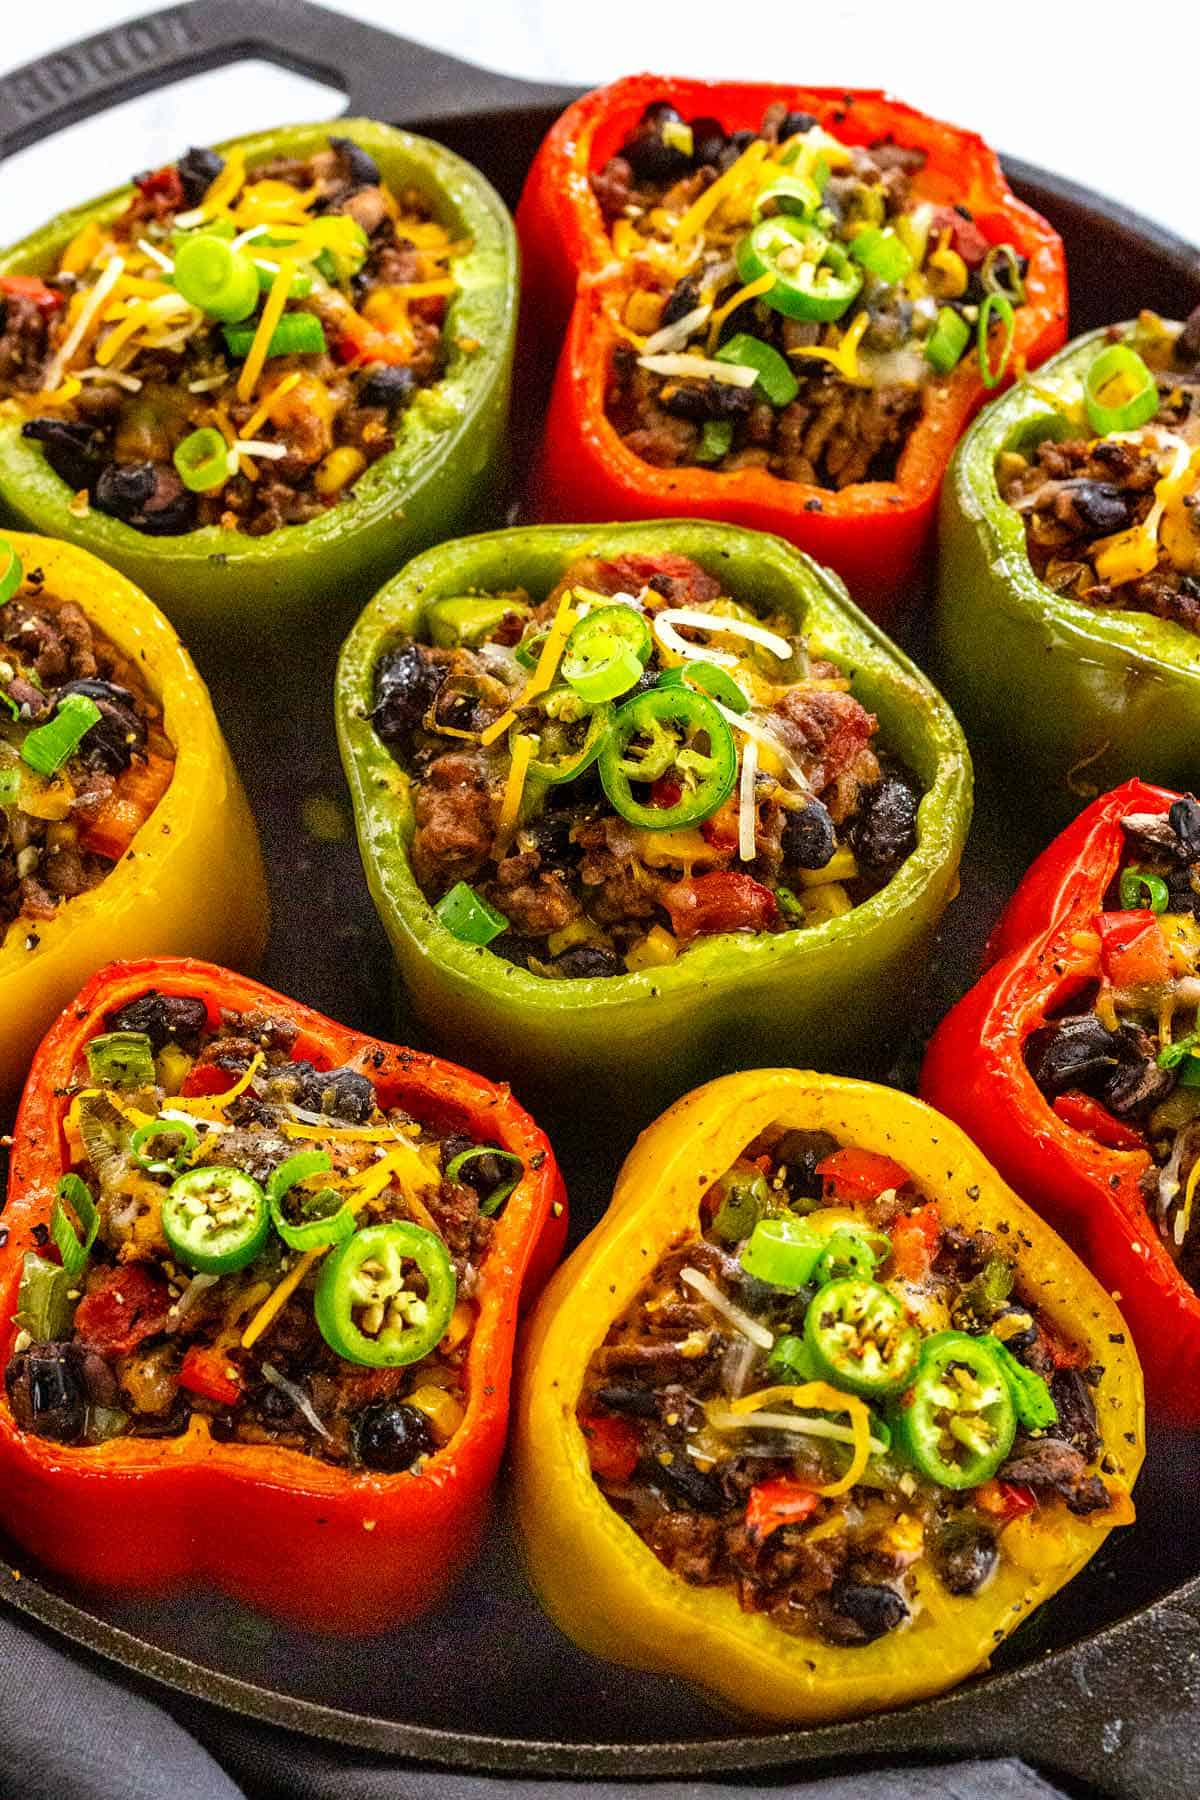 STUFFED PEPPERS WITH GROUND BEEF JESSICA GAVIN